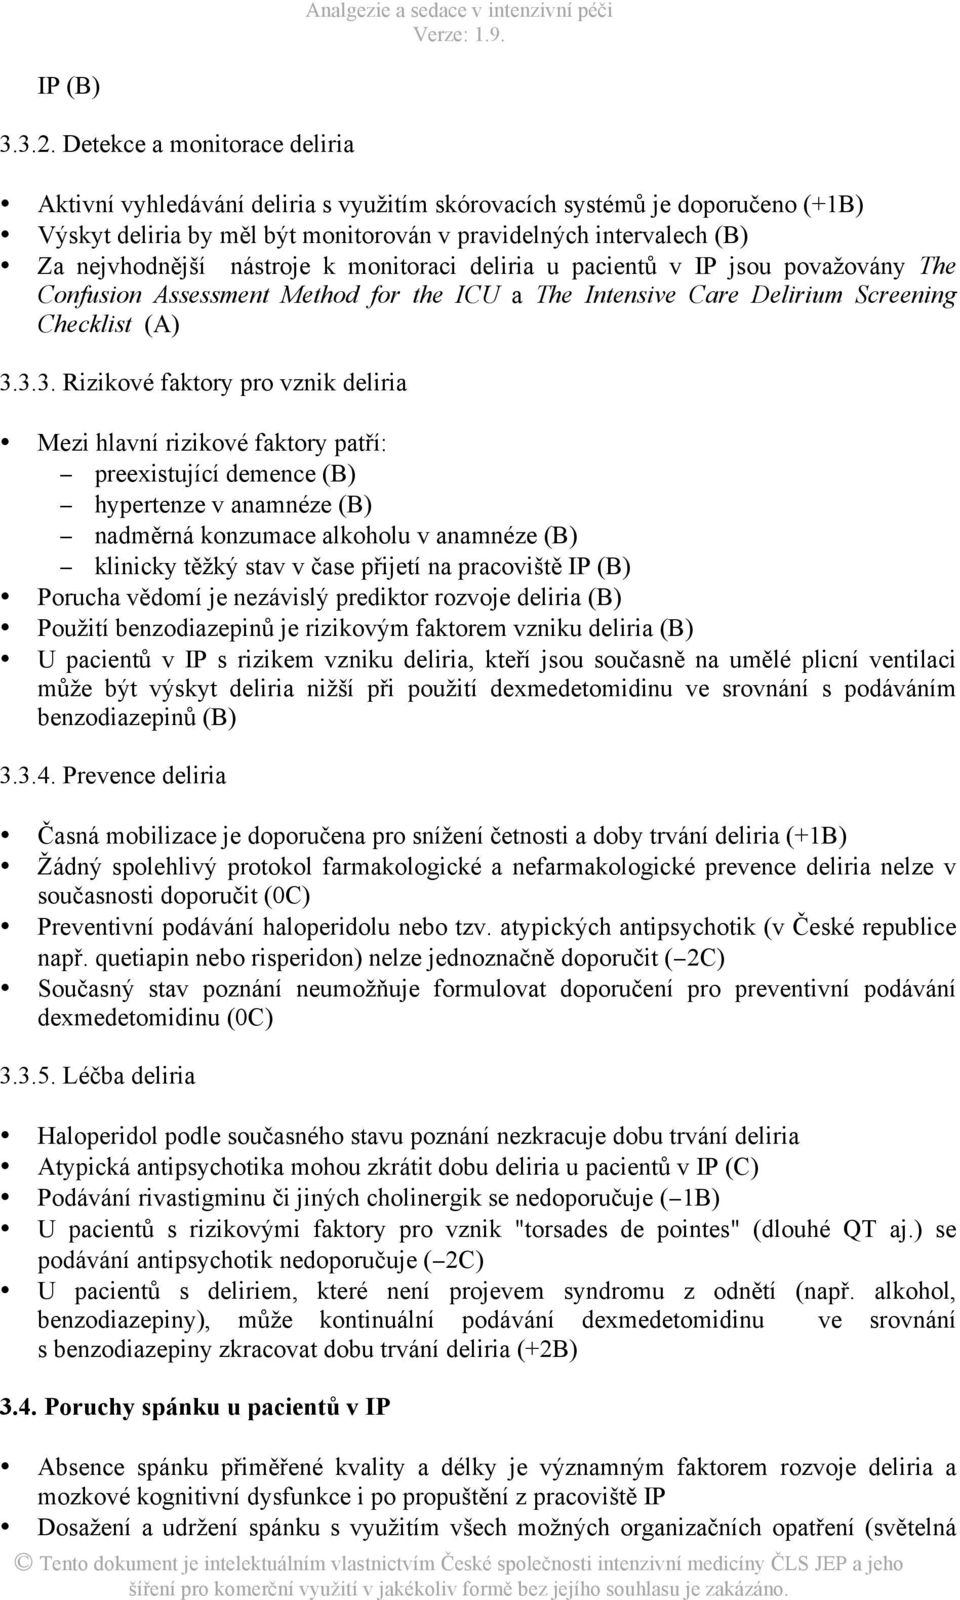 nástroje k monitoraci deliria u pacientů v IP jsou považovány The Confusion Assessment Method for the ICU a The Intensive Care Delirium Screening Checklist (A) 3.